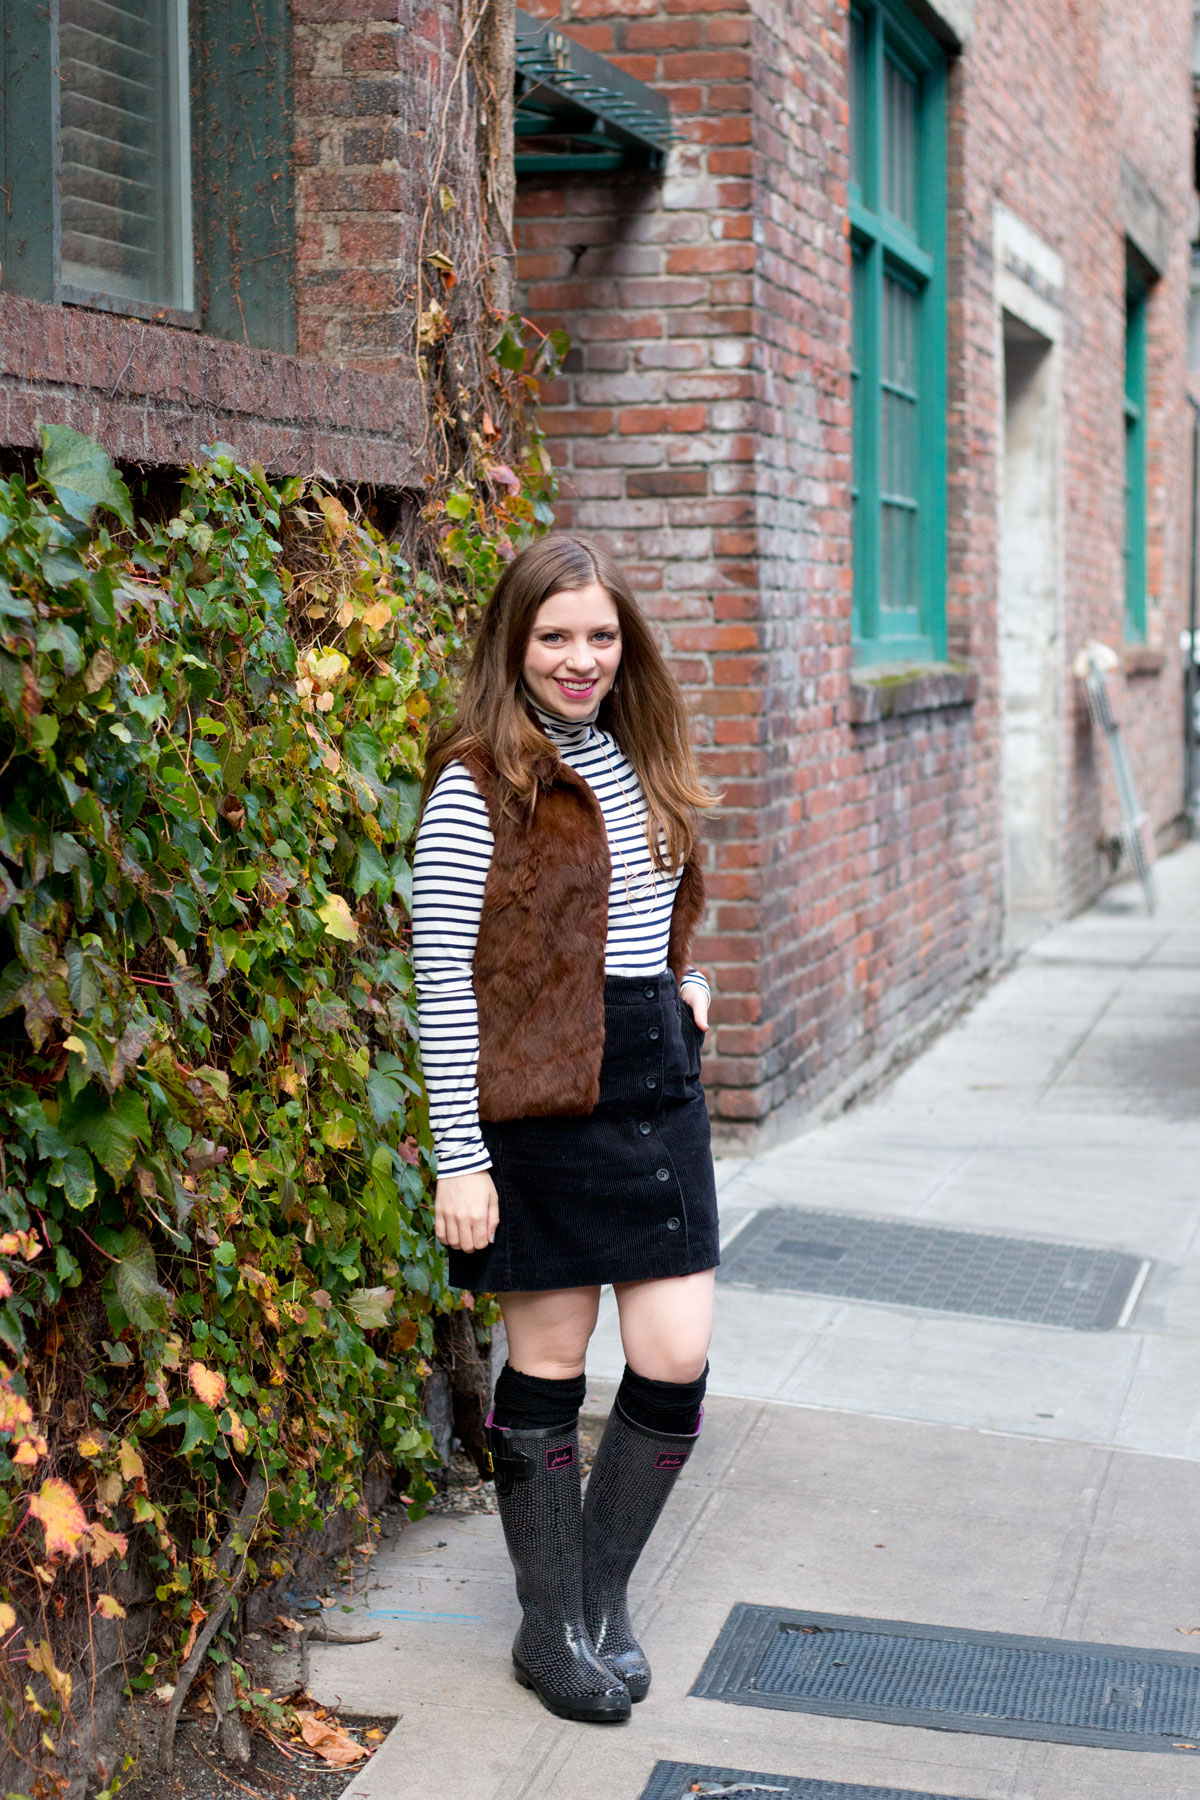 Rain Boots Outfit with Skirt for Fall // hellorigby.com seattle fashion blog